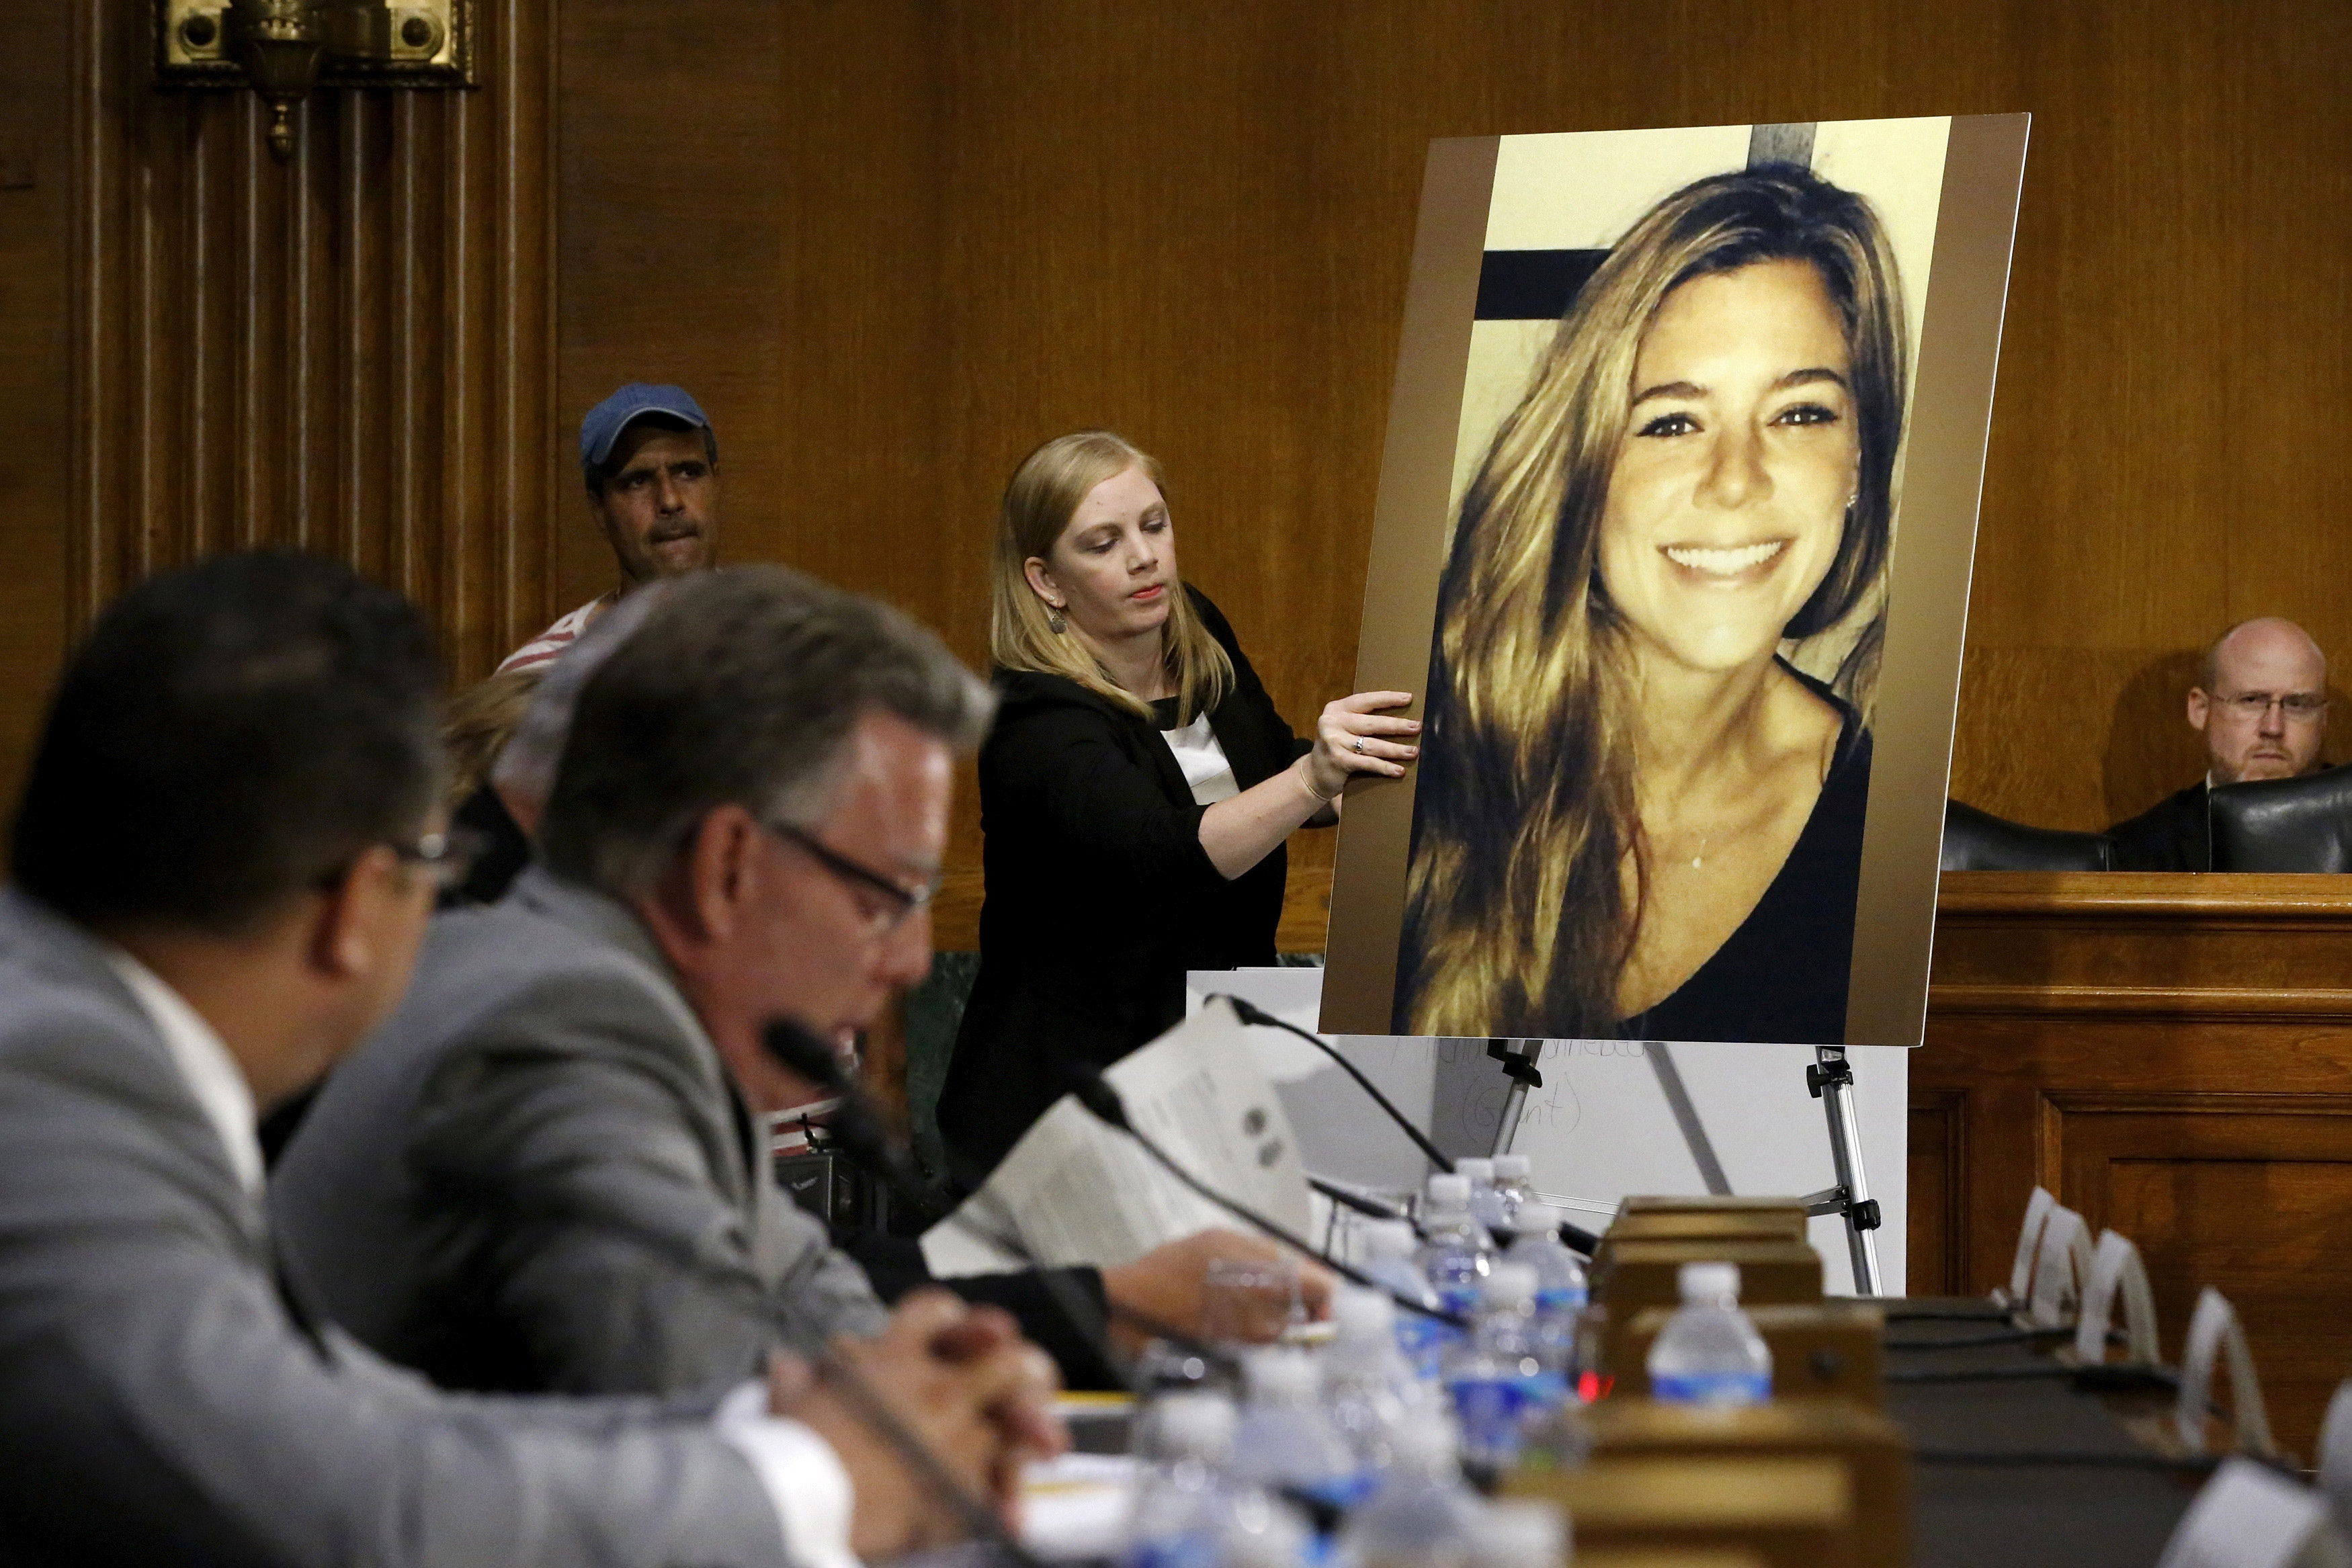 U.S. prosecutors seek arrest of illegal immigrant acquitted of Kate Steinle murder